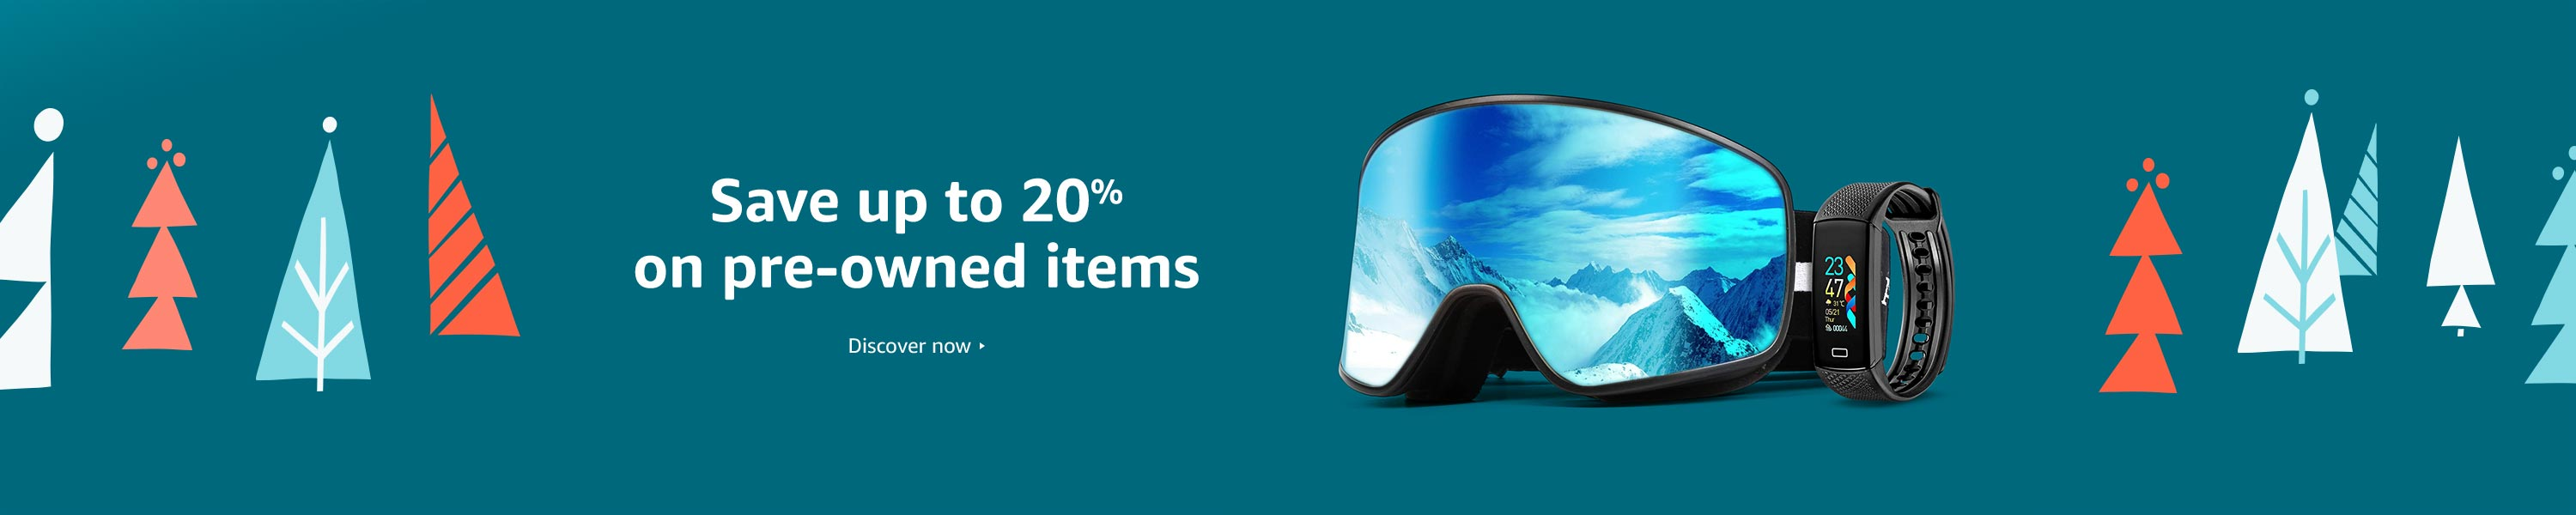 Save up to 20% on pre-owned items